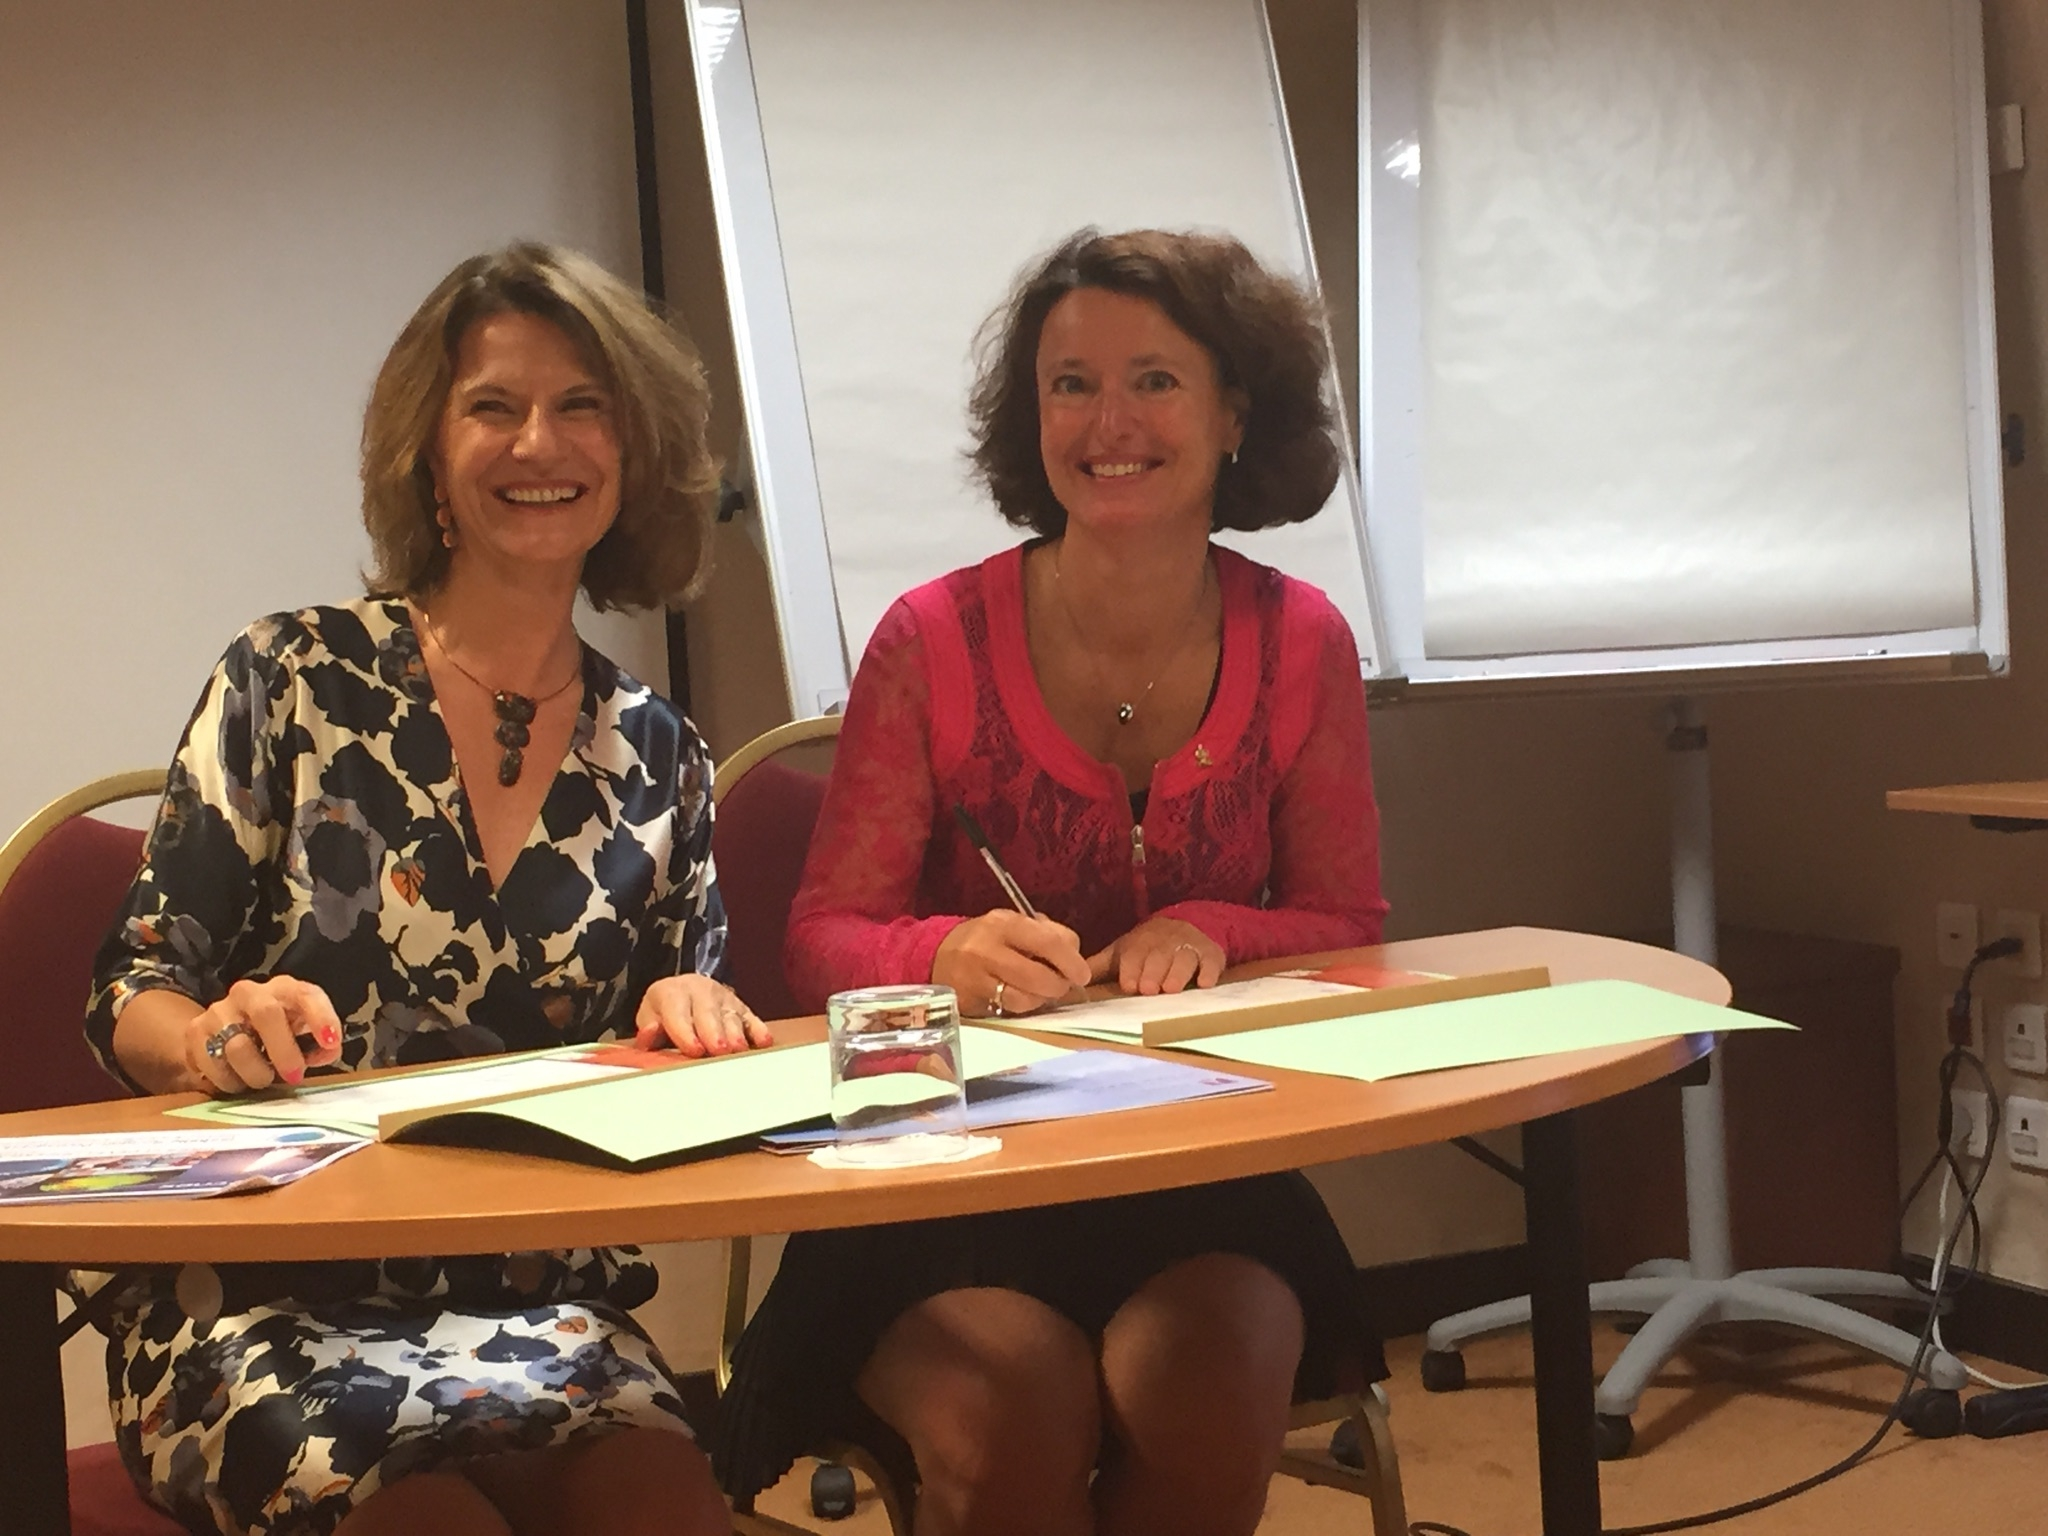 cp113-2015_-_adhesion_au_club_developpement_durable_signature_isabelle_rongier.jpg